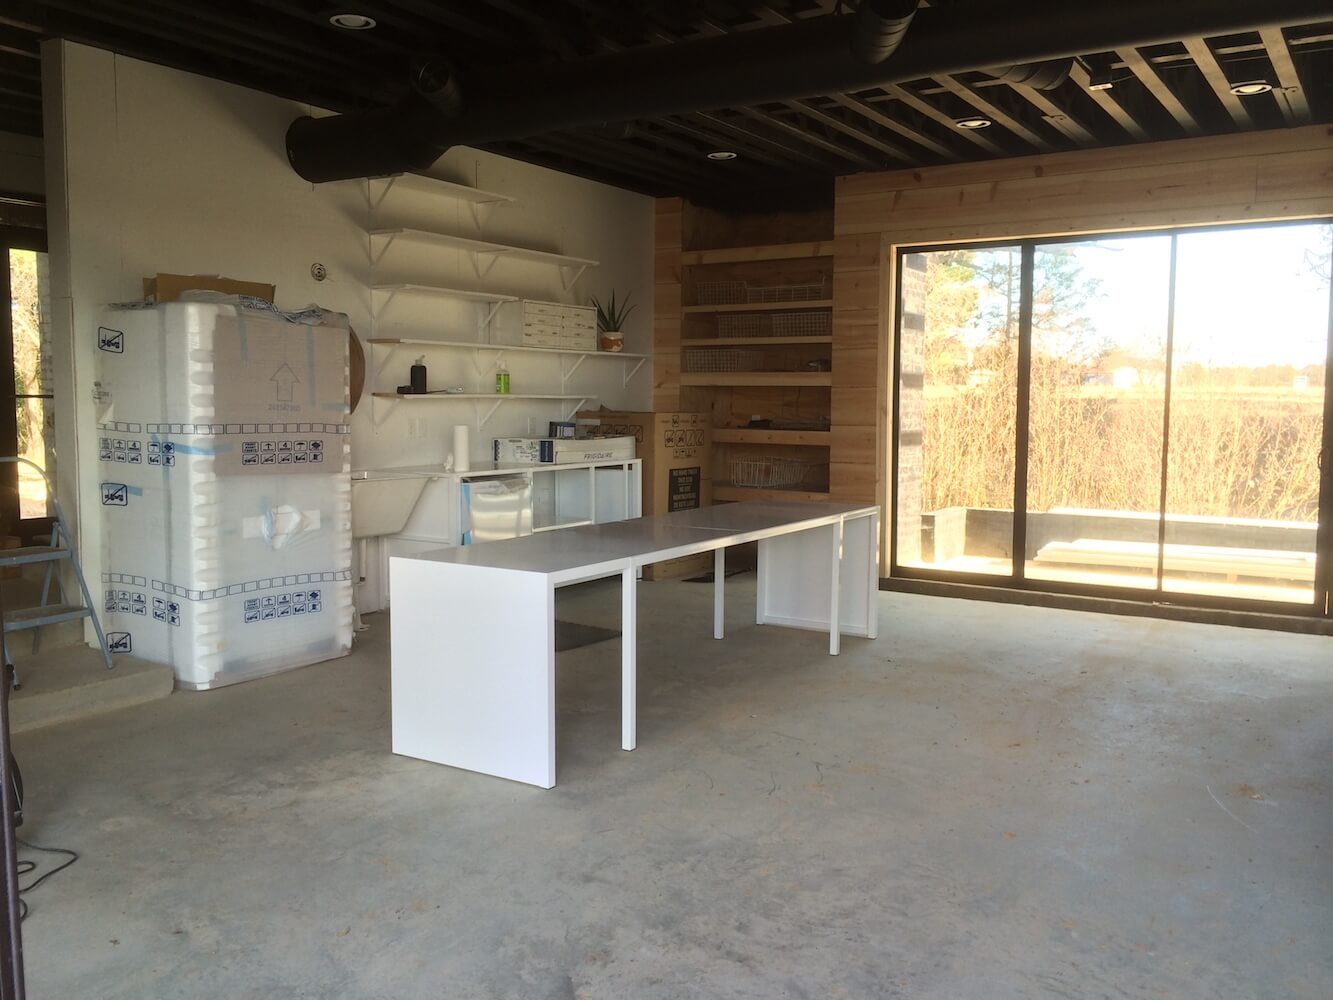 kitchen-table-counter-2